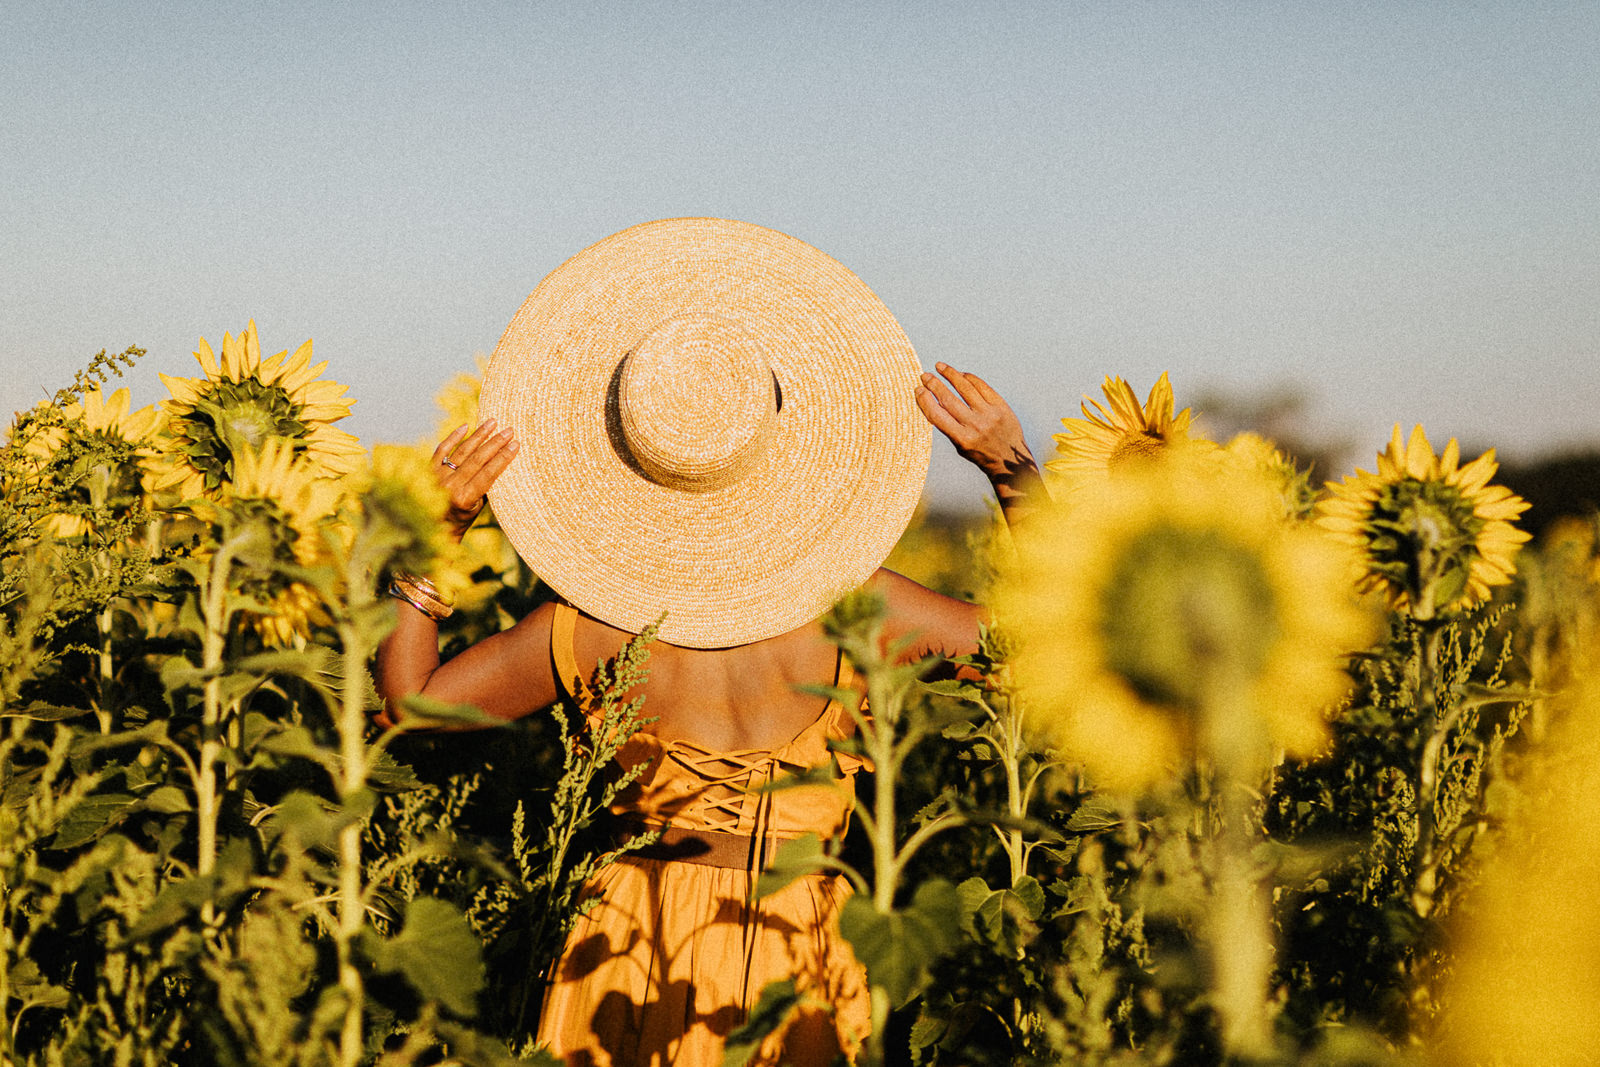 Girl with sunhat in sunflower field